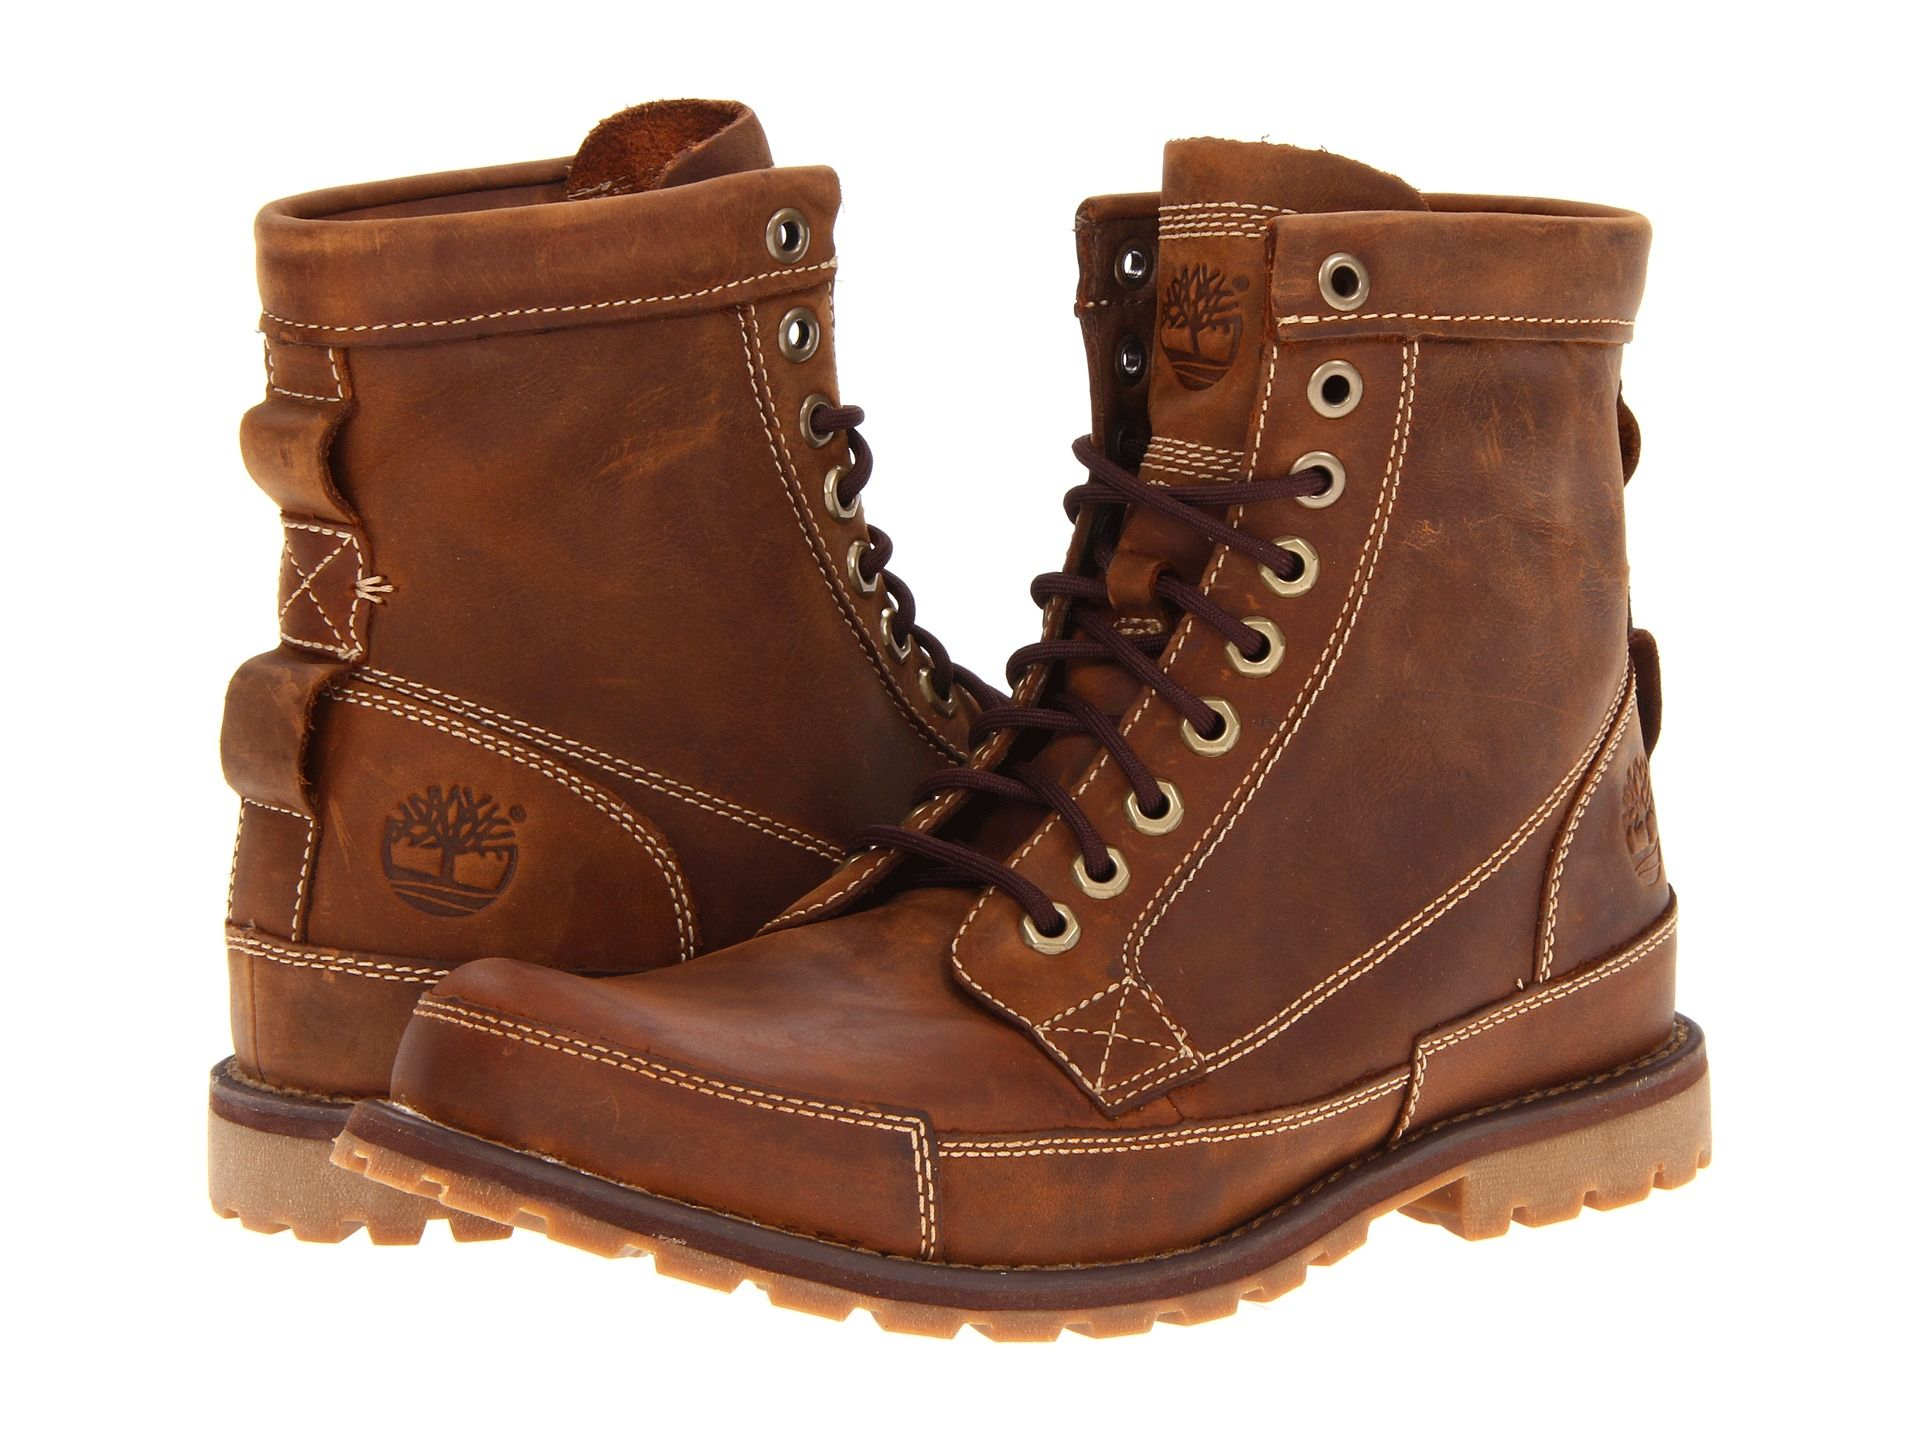 Timberland Earthkeepers 6″ Leather Boot For MEN, Medium Brown Oiled Nubuck/Tan  Canvas